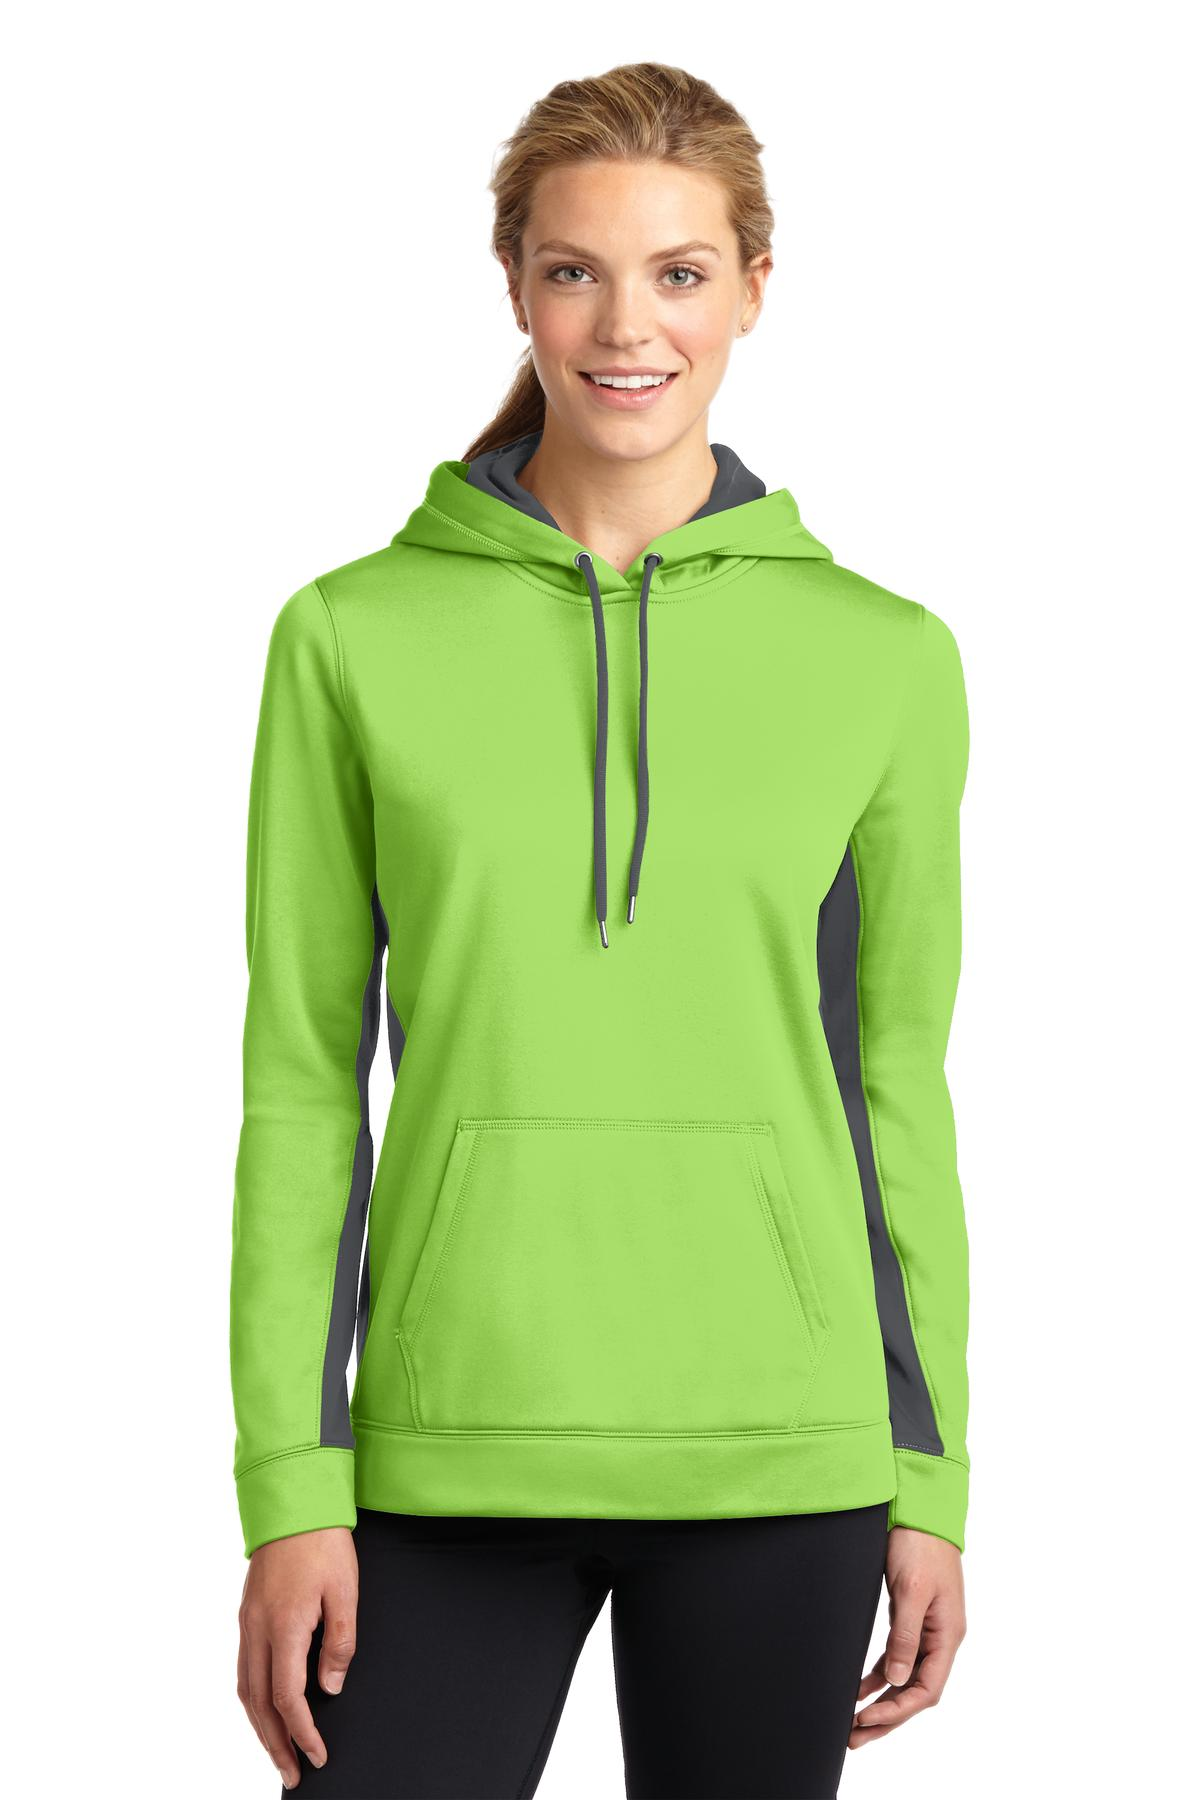 Sport-Tek ®  Ladies Sport-Wick ®  Fleece Colorblock Hooded Pullover. LST235 - Lime Shock/ Dark Smoke Grey